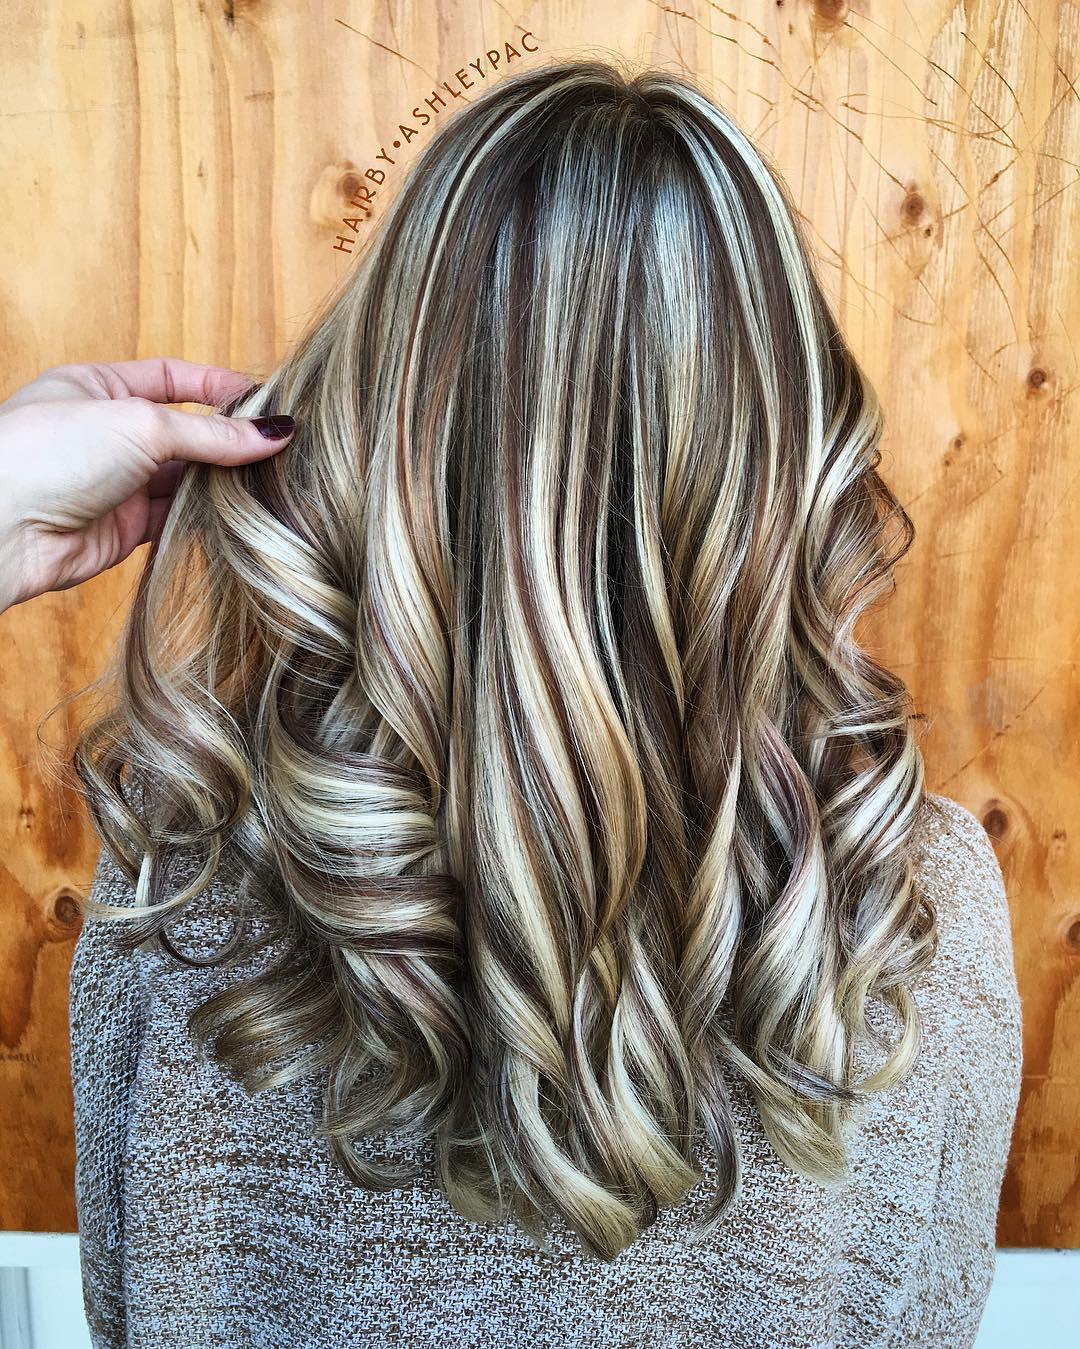 Highlighted blonde hair pictures